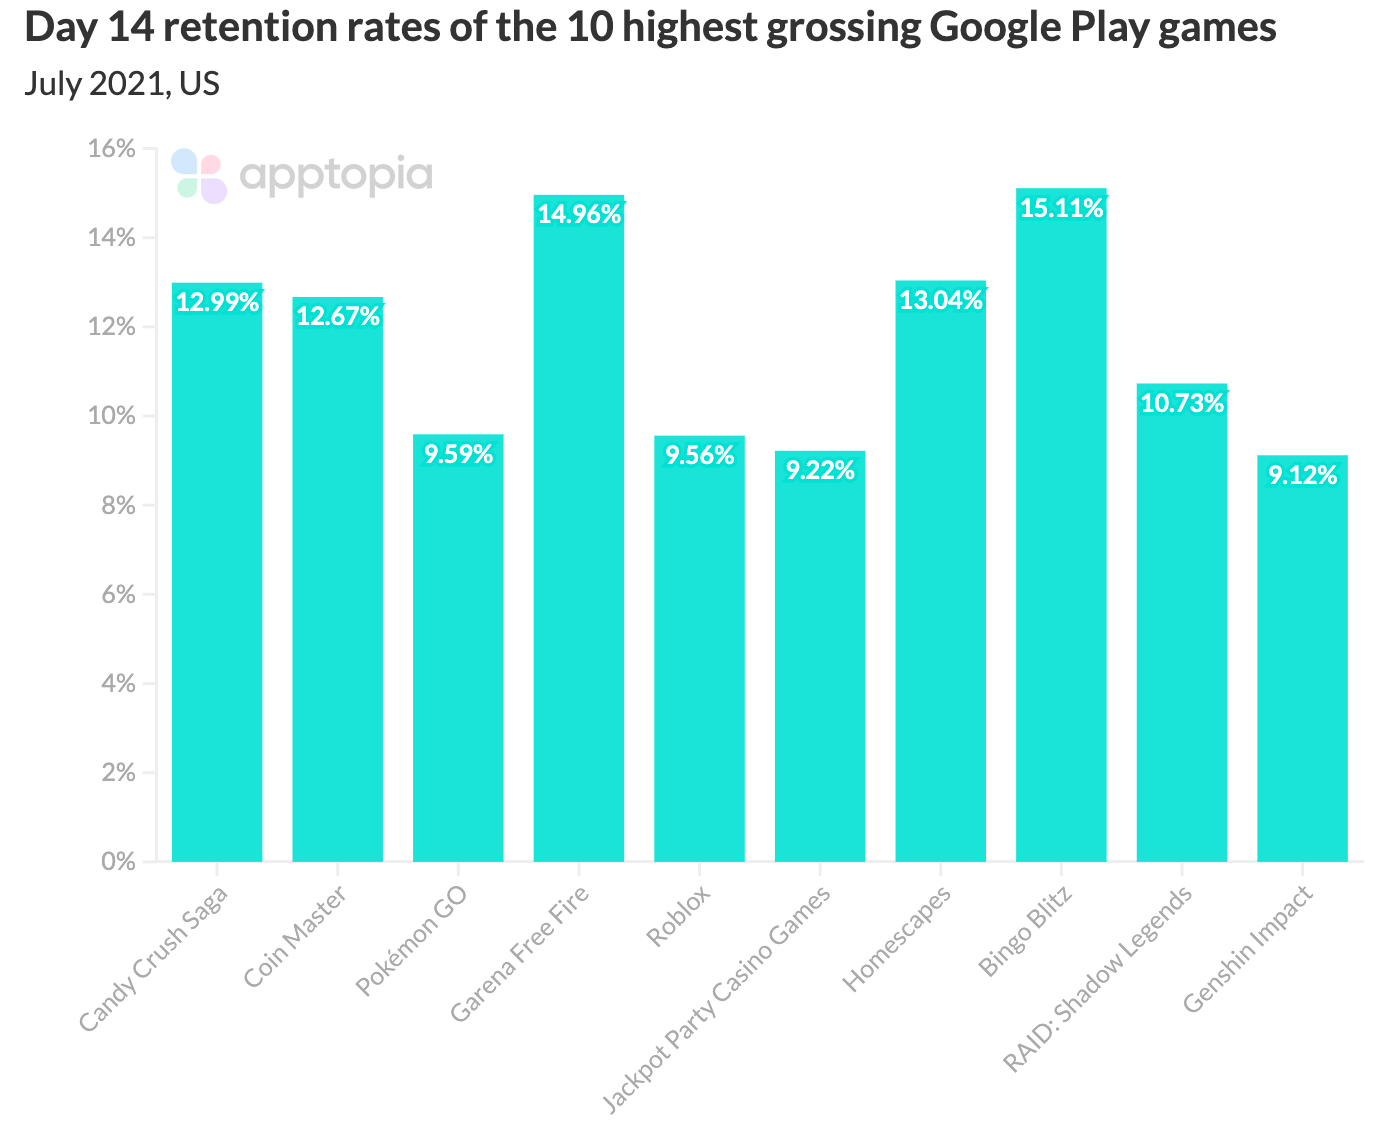 day 14 retention rates of the highest grossing google play games